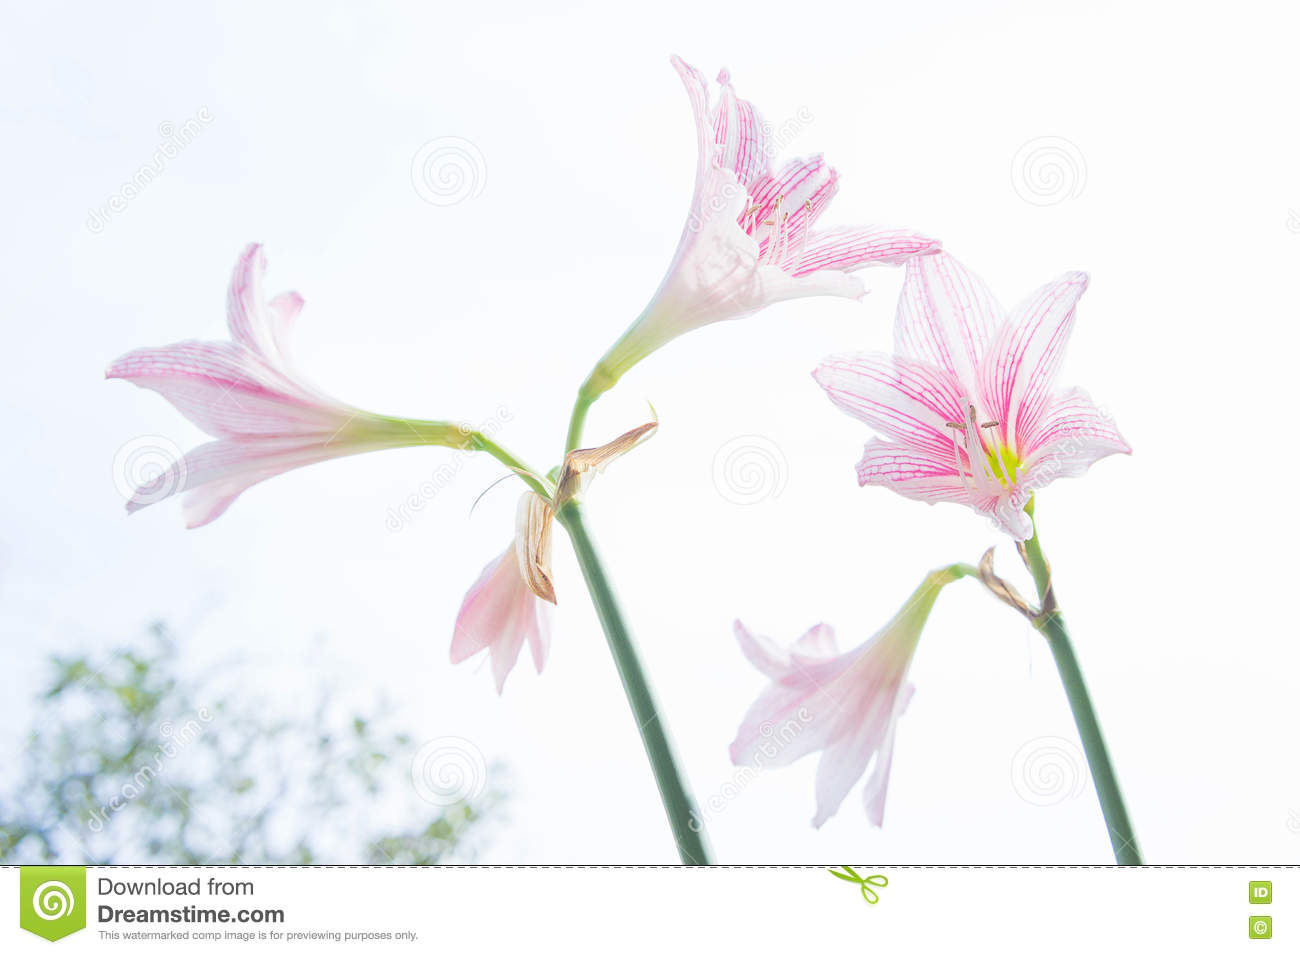 Flower hippeastrum looks like a lily white with pink stripes pl download comp izmirmasajfo